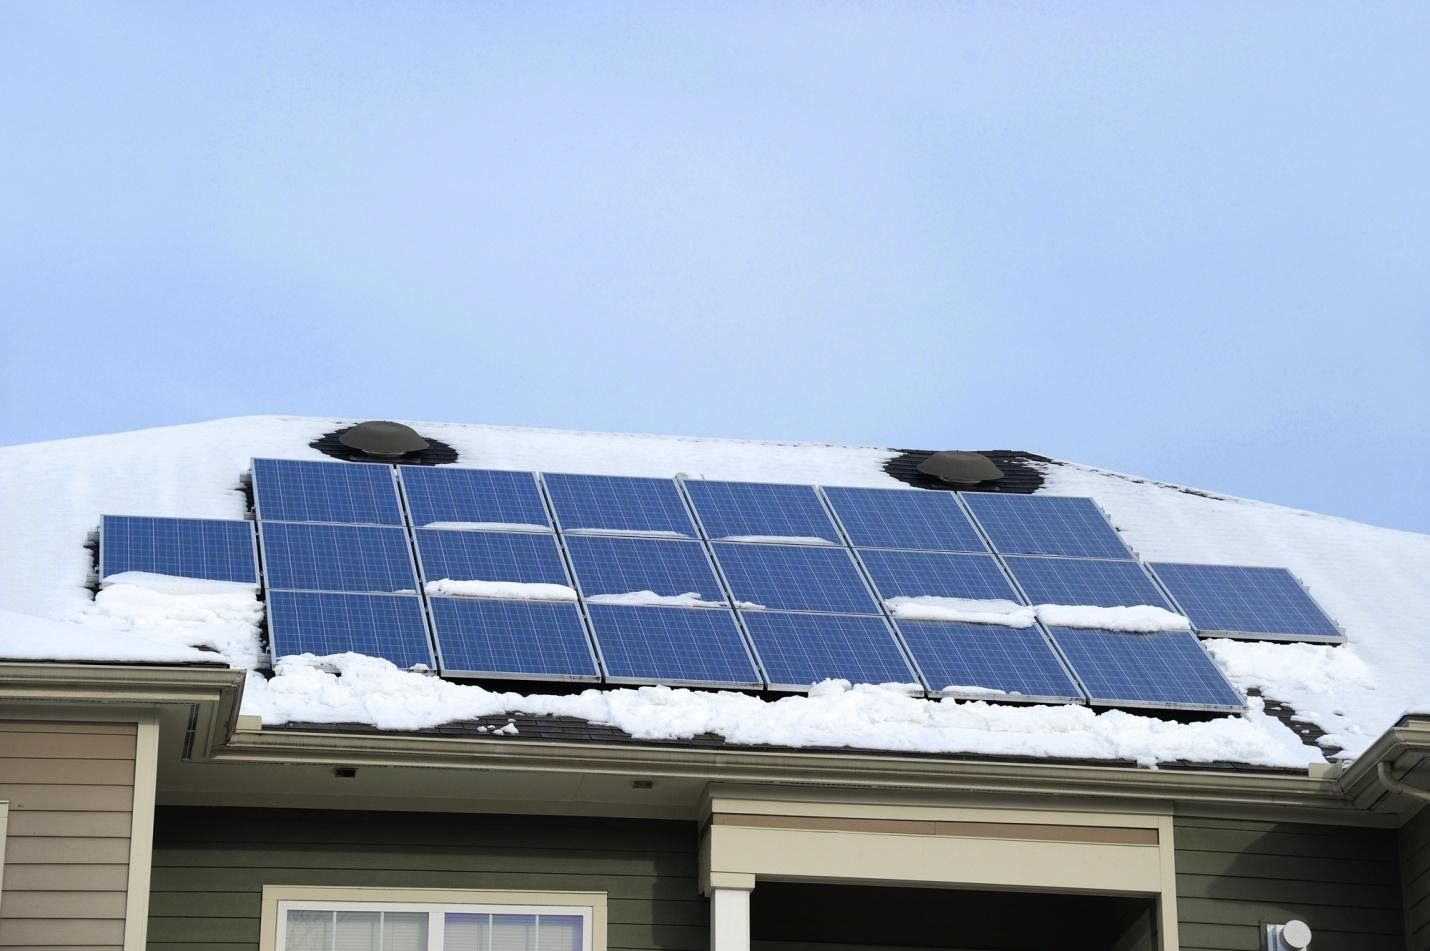 Is Solar Panel Installation Worth It if You Might Move?